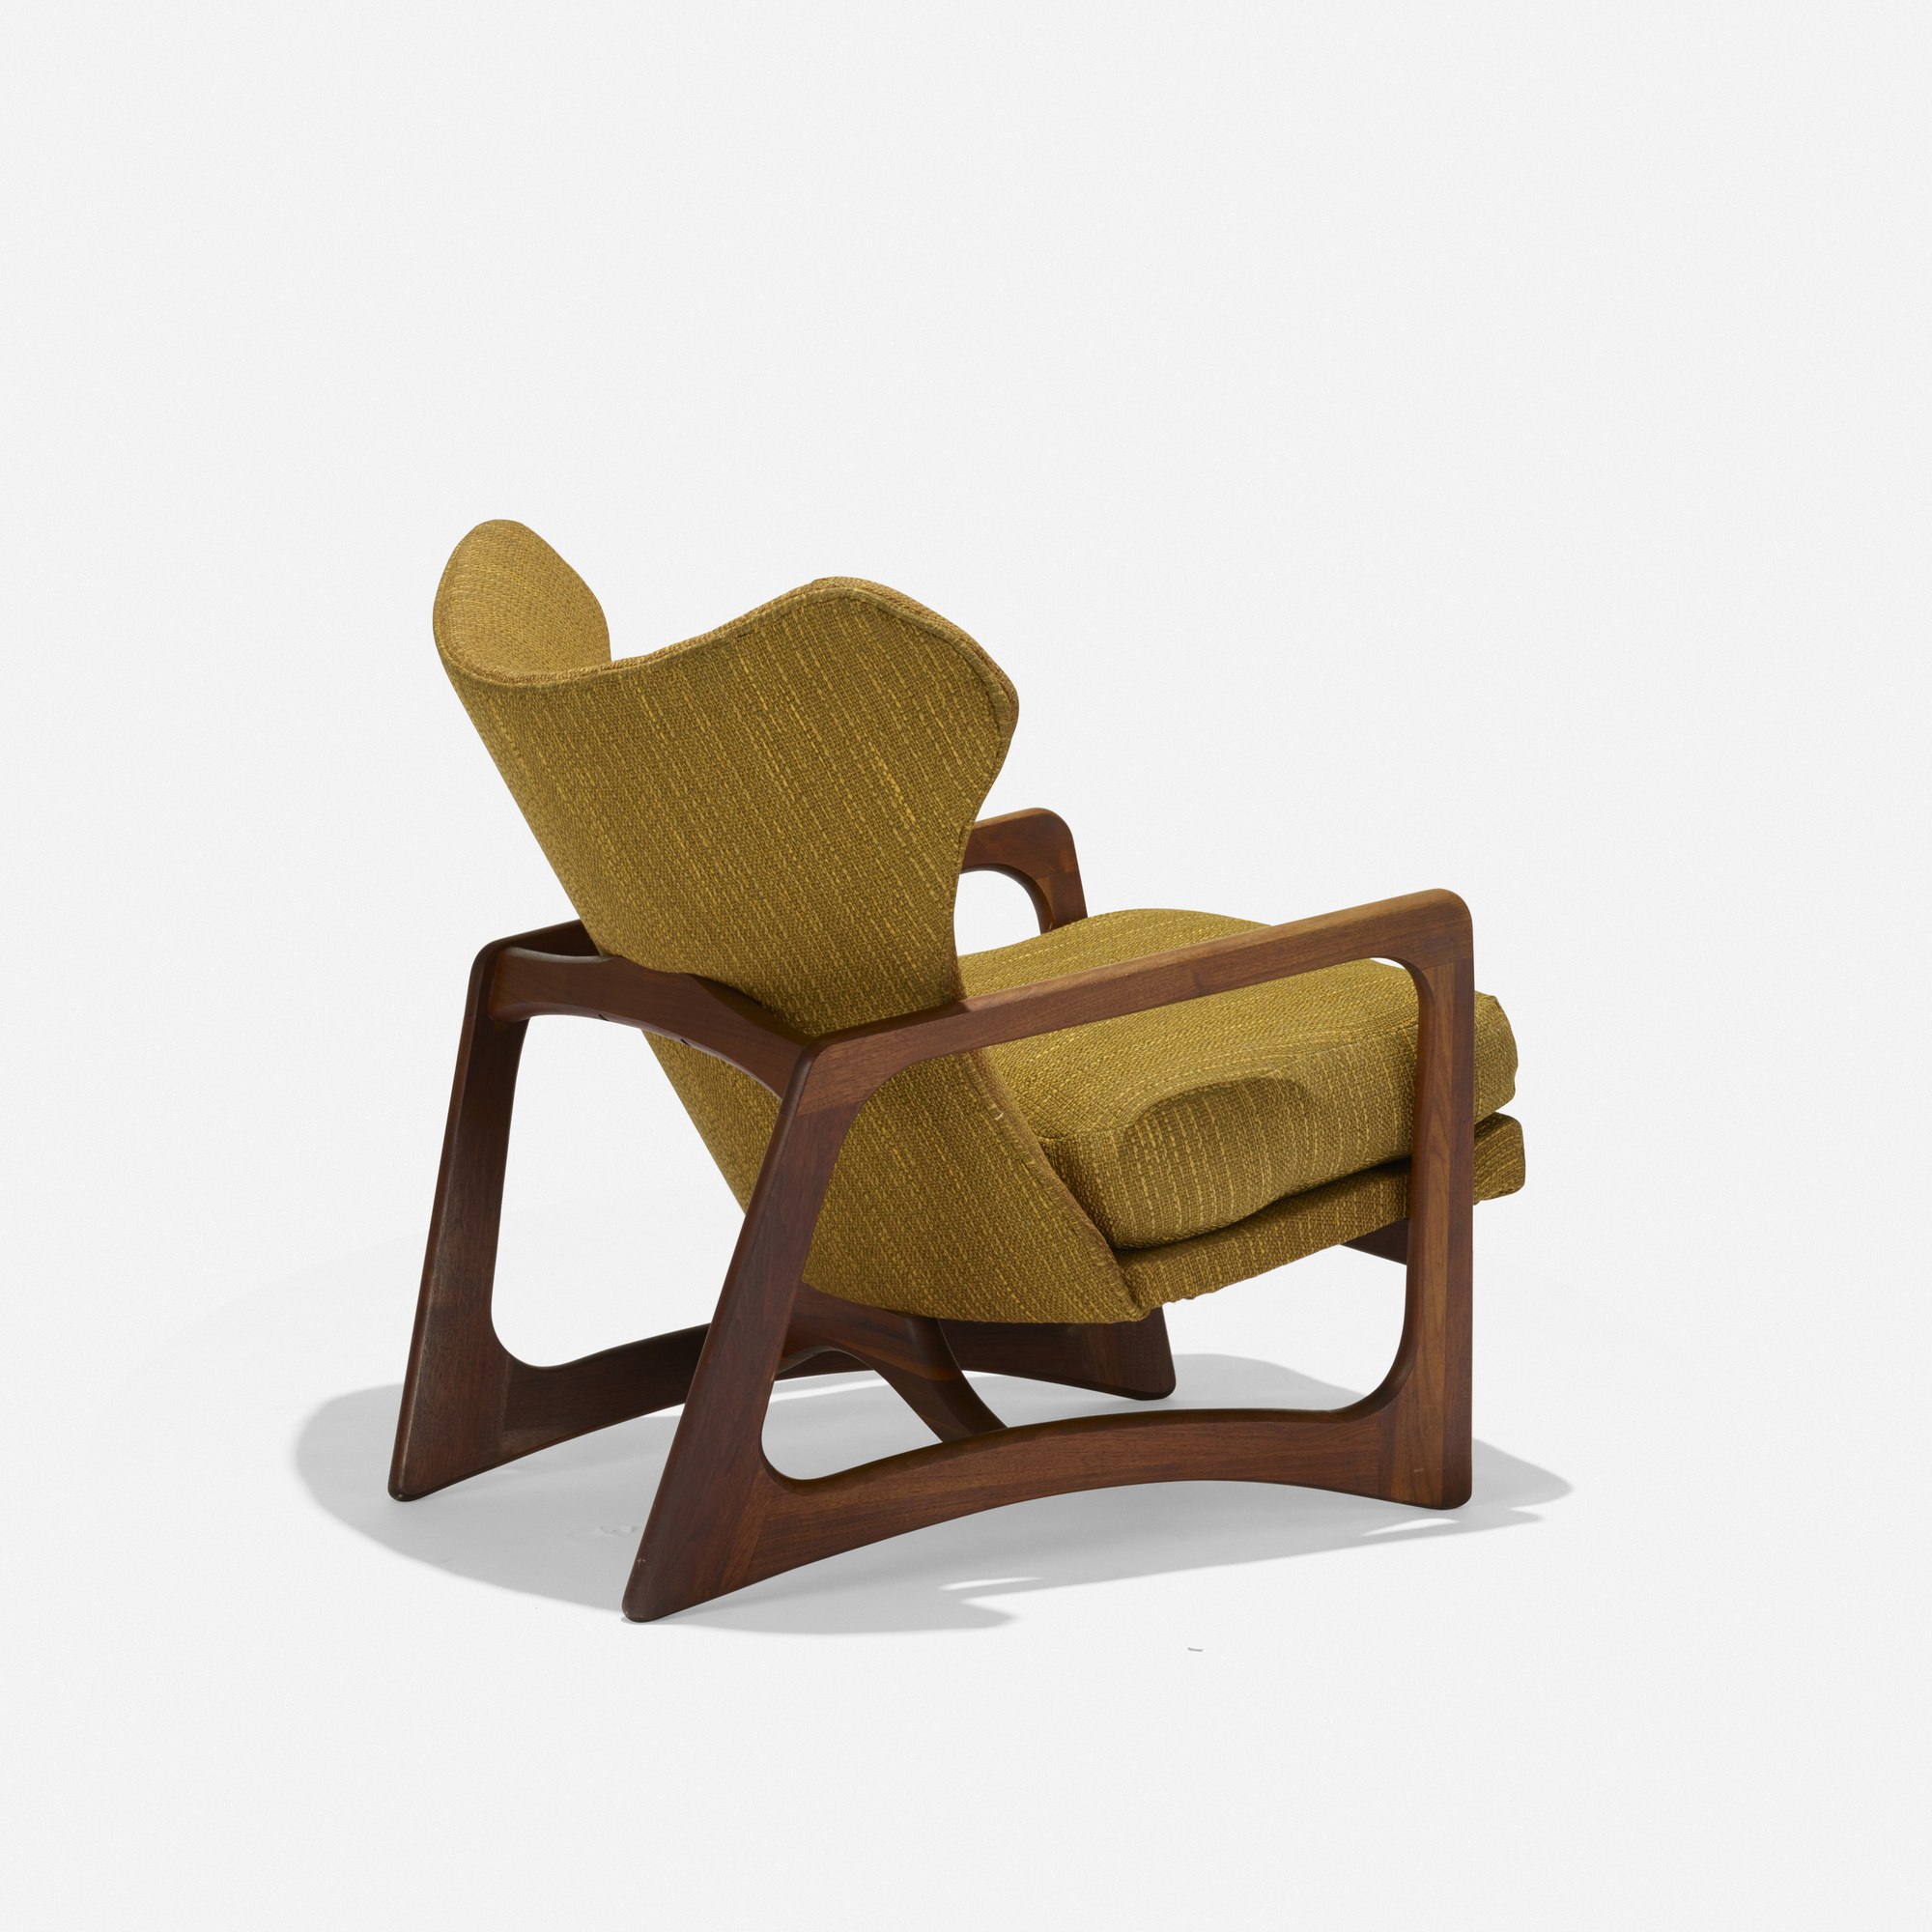 adrian pearsall lounge chair in chinese character 576 model 2466c american design 2 of 3